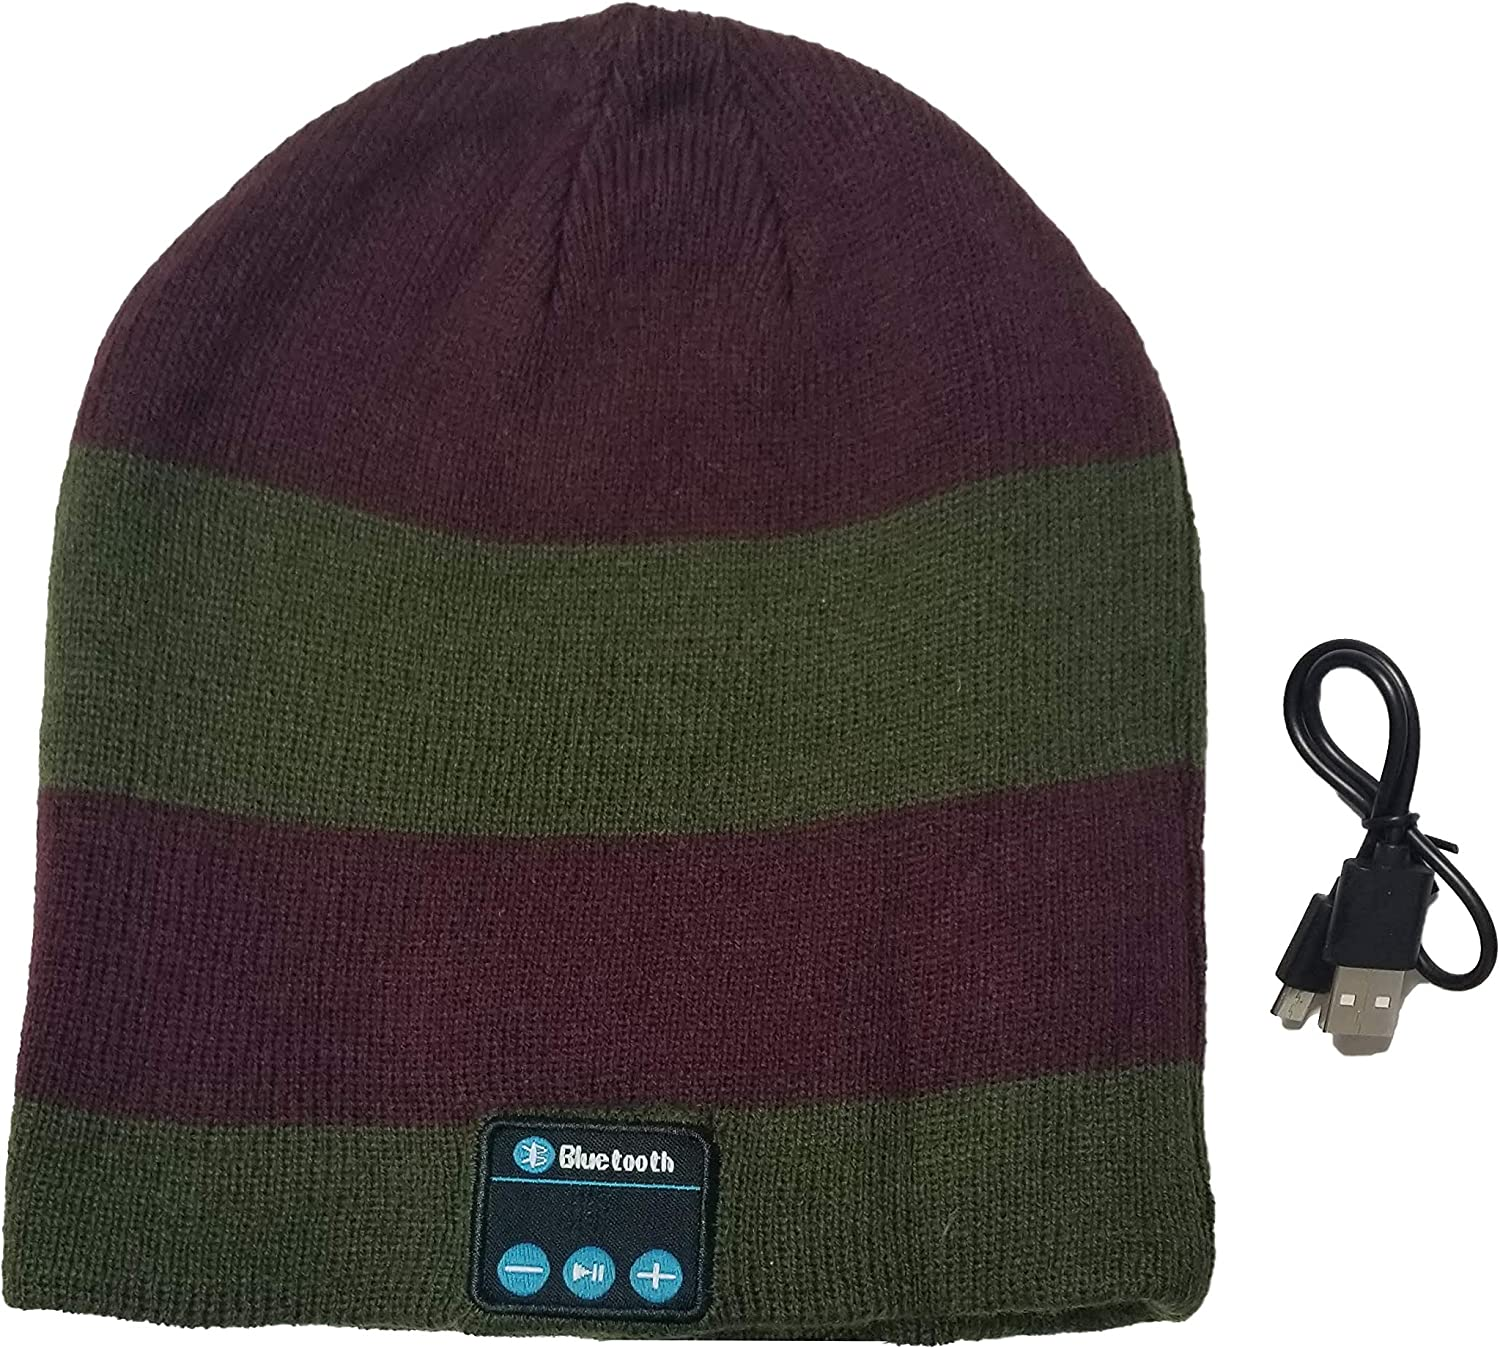 Savage Gear Wireless Youth Beanie Hat with Wireless Hands Free Easy Connect Technology (Olive/Maroon)